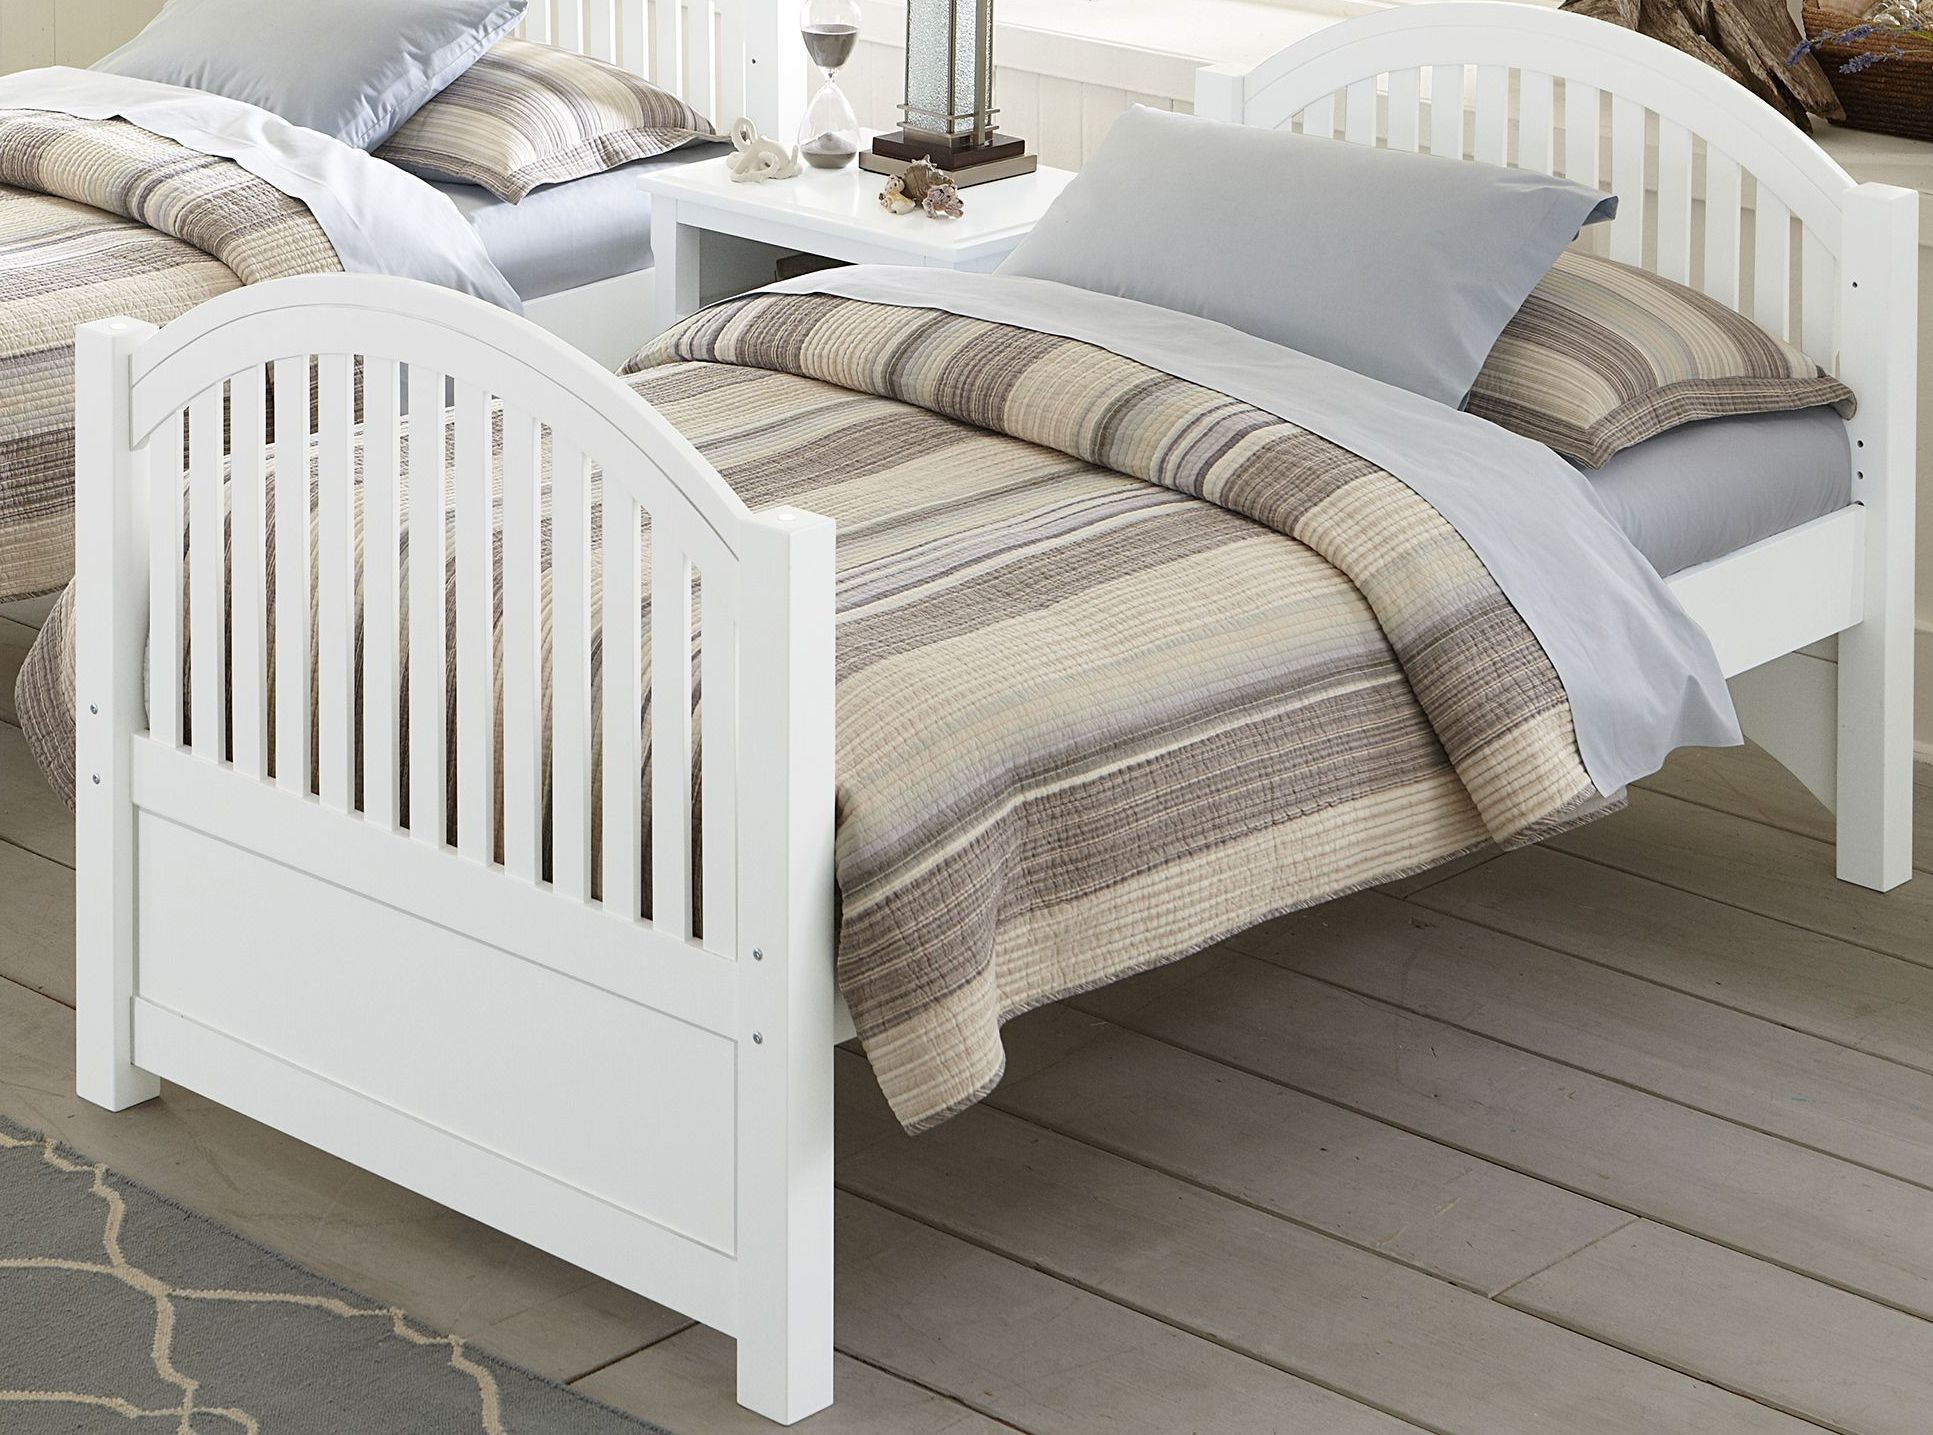 Lake house white adrian youth panel bedroom set from ne kids coleman furniture Lake home bedroom furniture